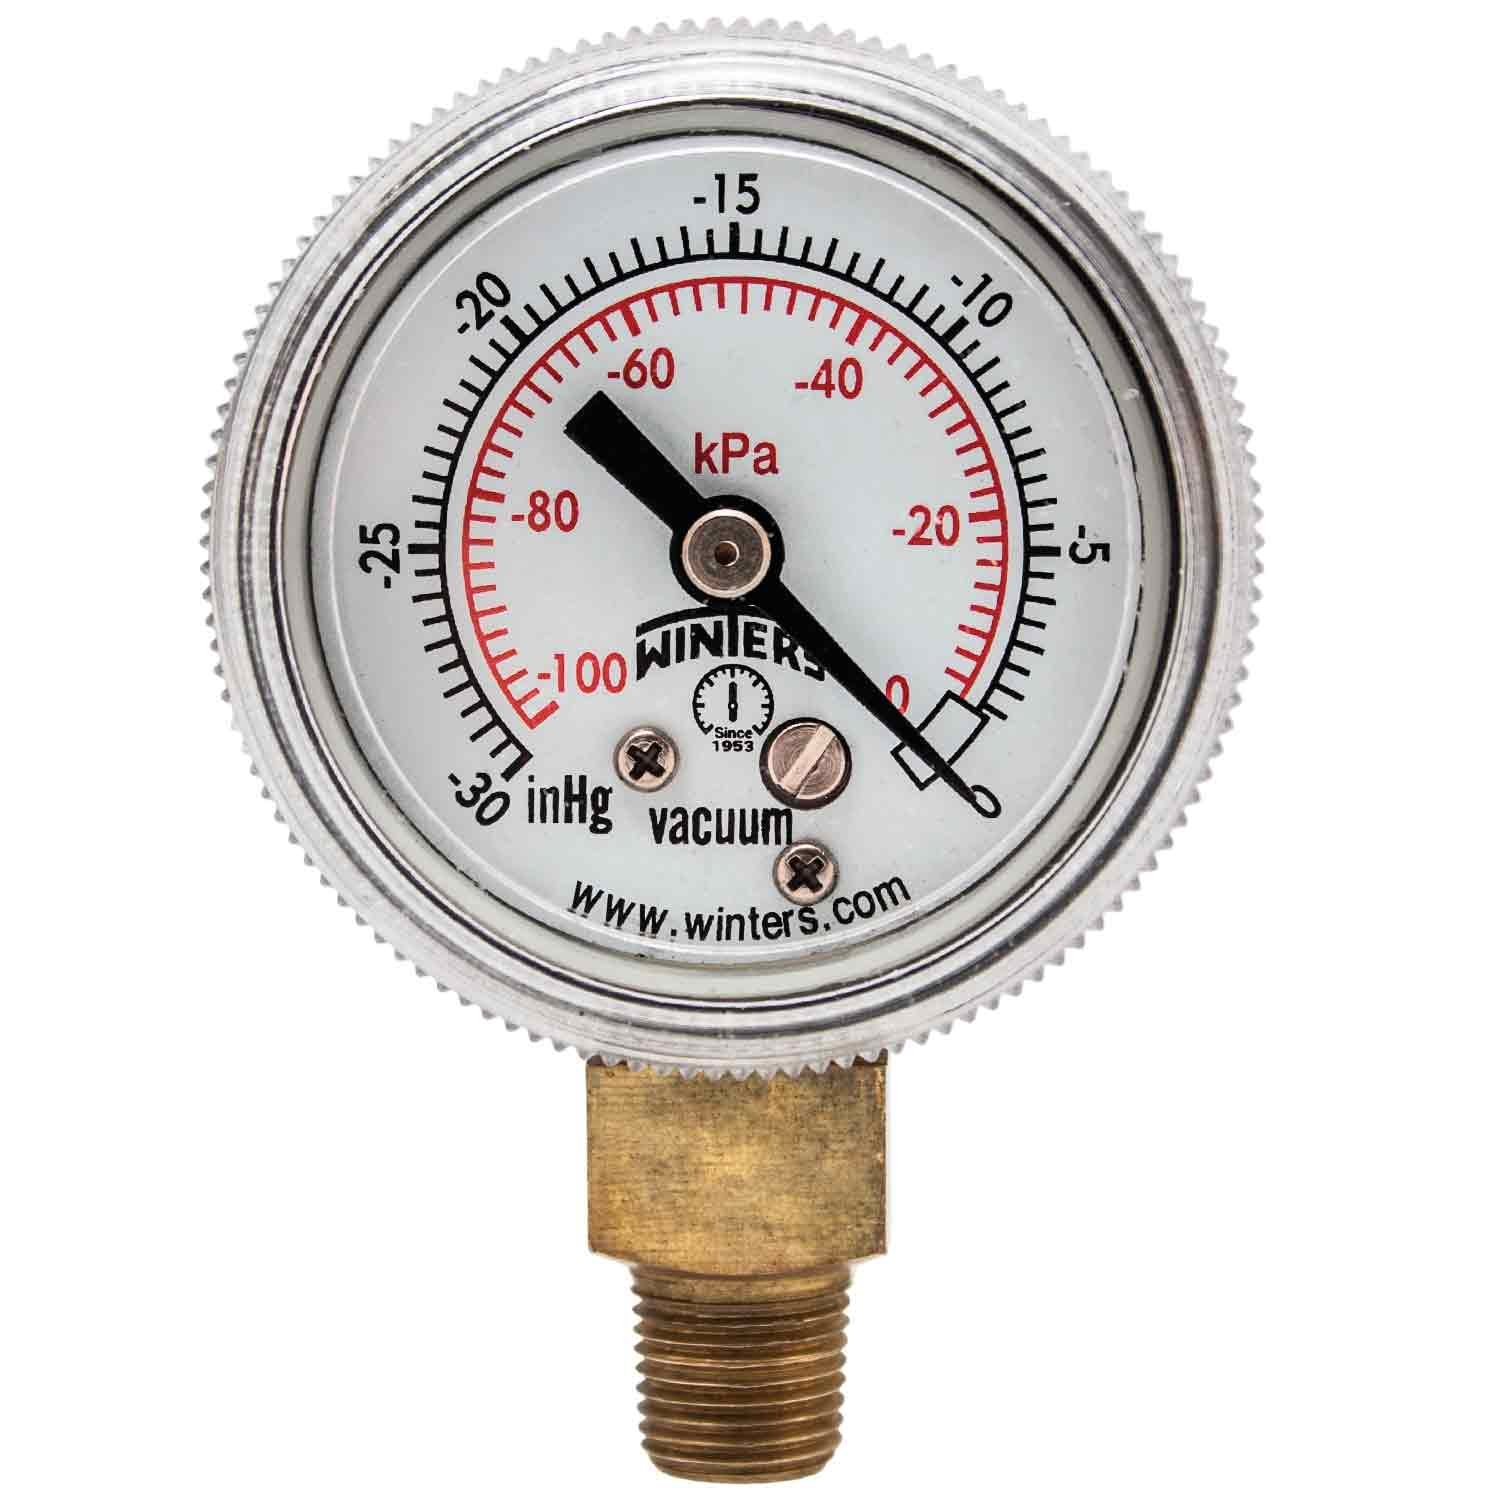 Winters P9S 90 Series Steel Dual Scale Pressure Gauge with Removable Lens 30Hg Vacuum kpa 1 1 2 Dial Display 2 1 2% Accuracy 1 8 NPT Bottom Mount